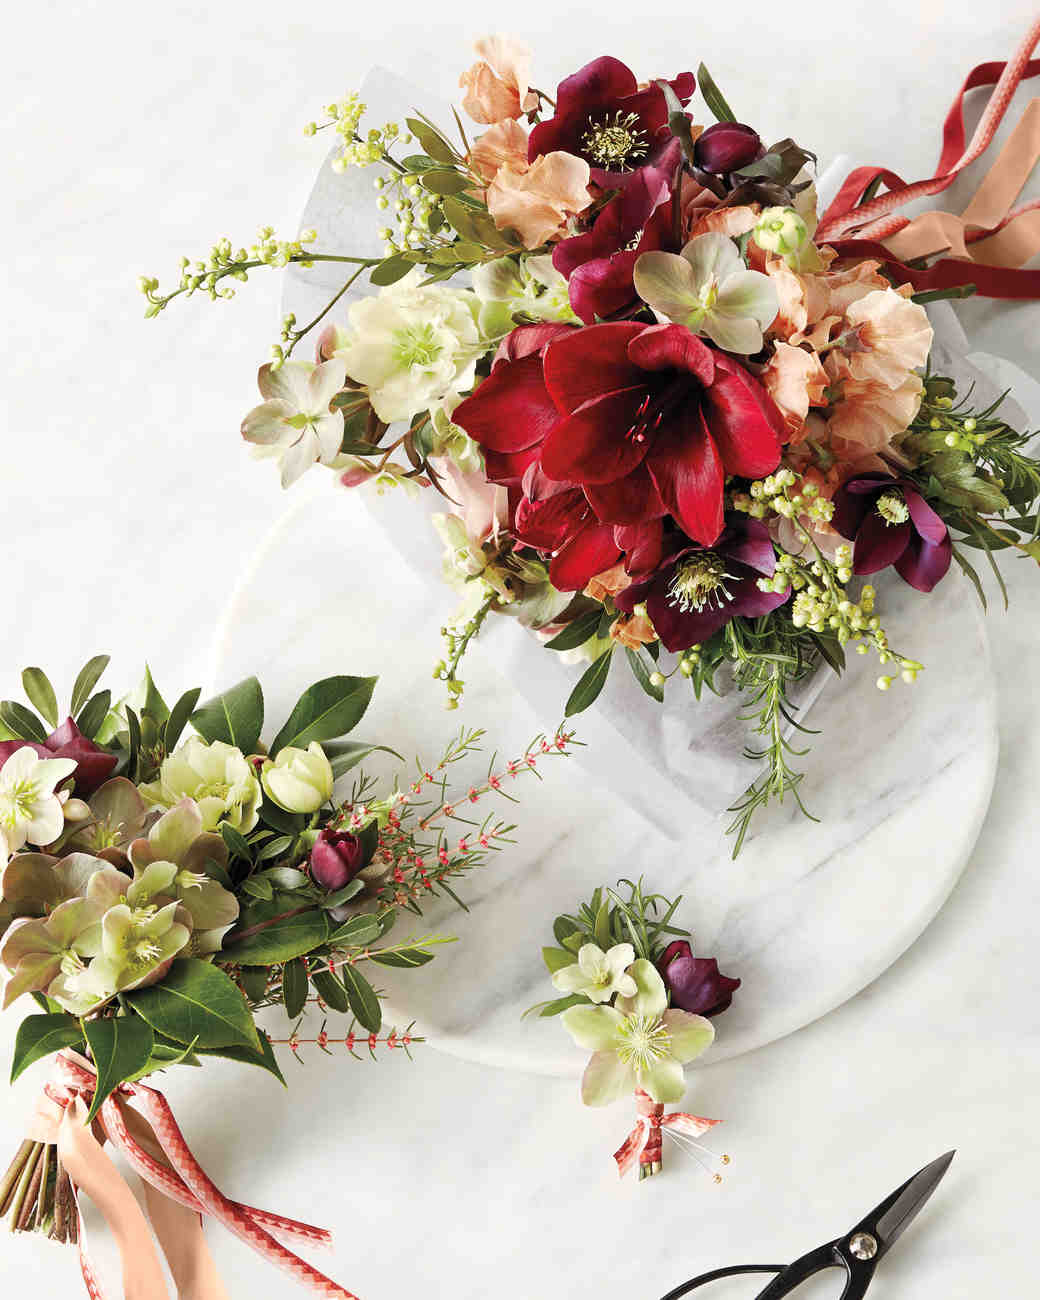 Ideas For Wedding Flowers: 13 Genius Winter Wedding Flower Ideas From Pro Florists